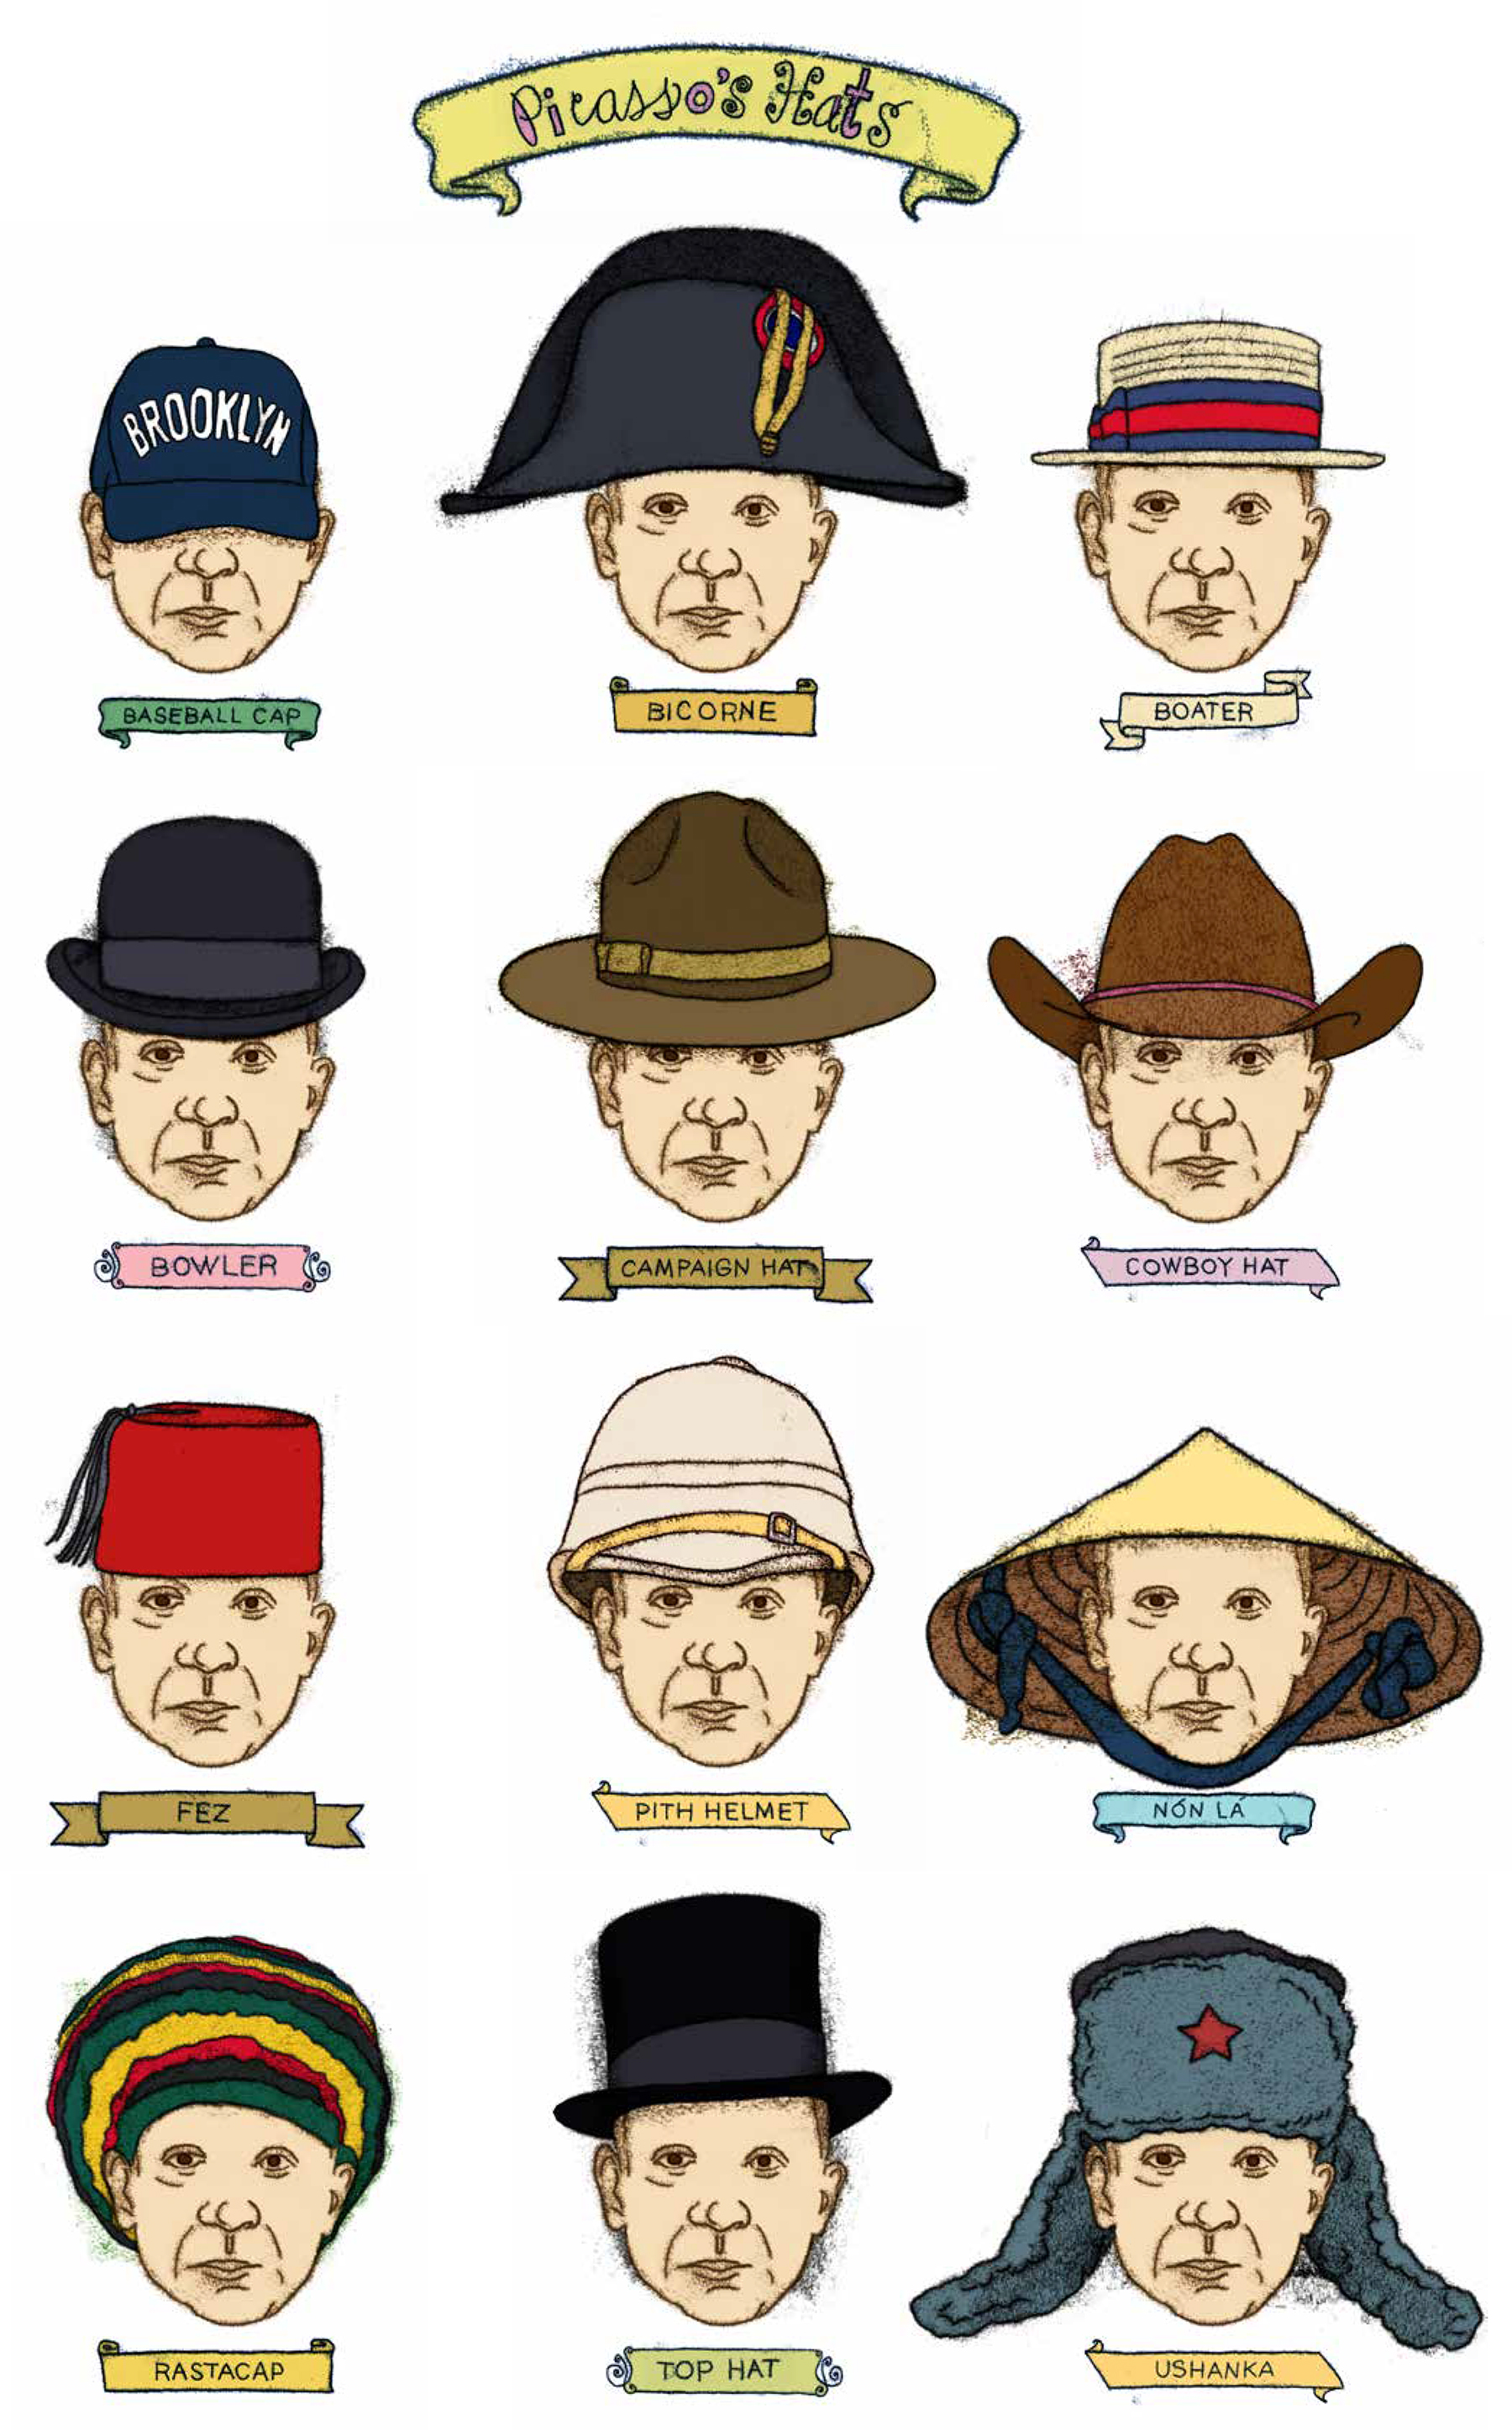 Picasso's Hats